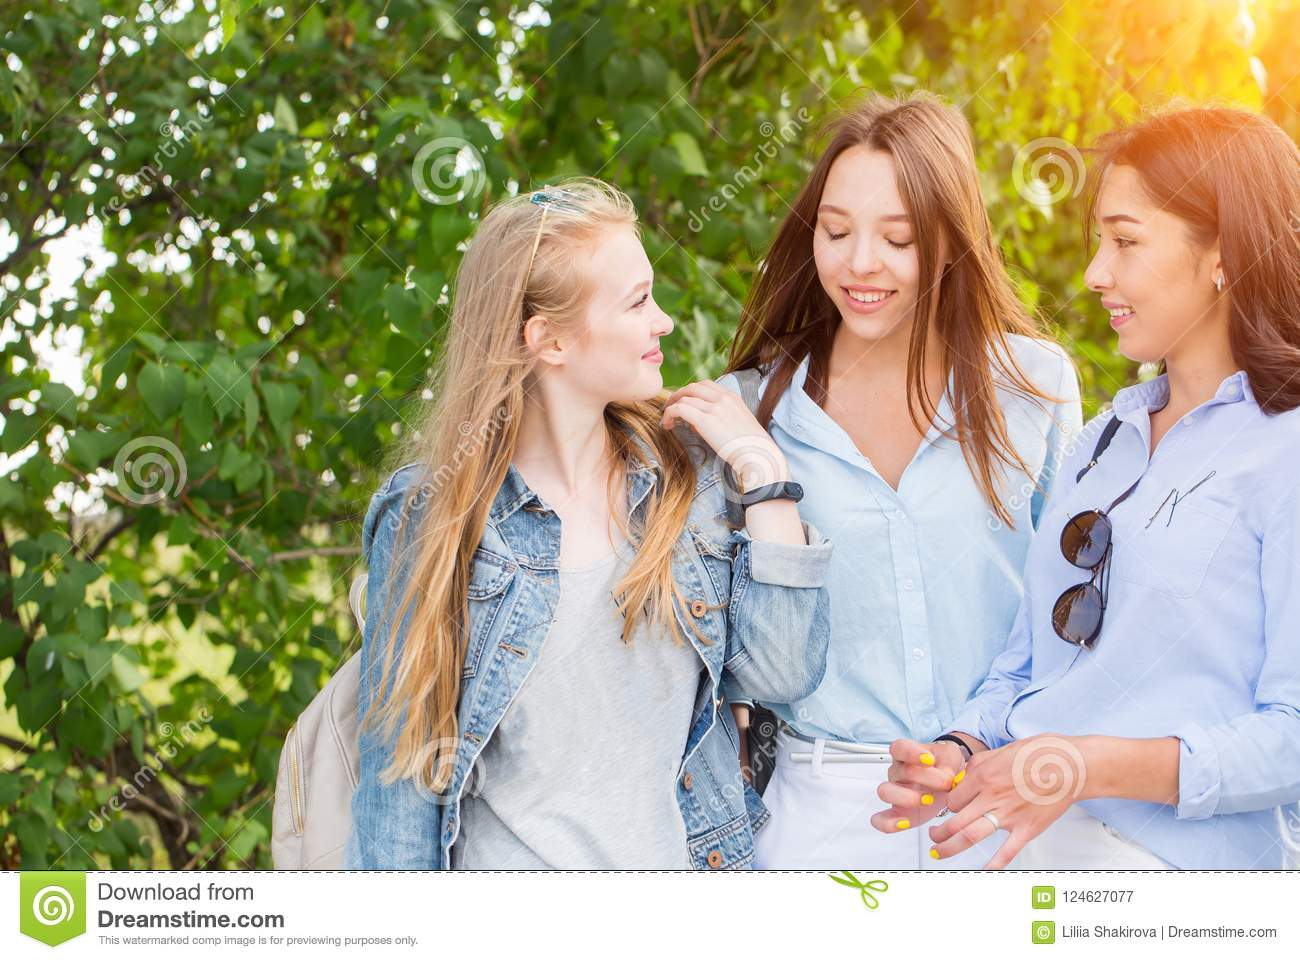 Three beautiful young girls students walking in the Park, talking and smiling against the trees